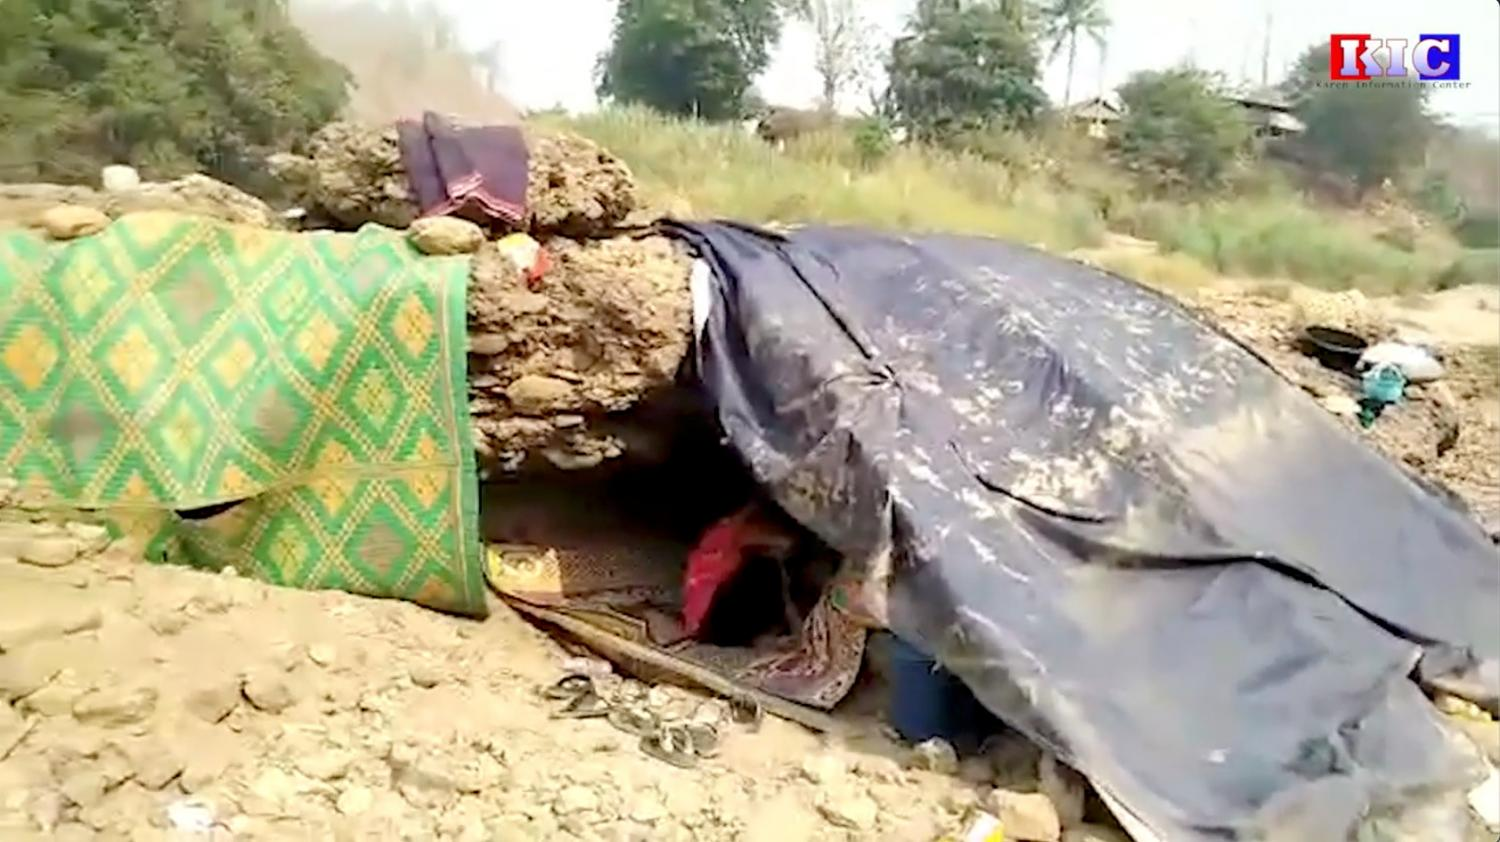 People hide under rocks following an airstrike, in Papun district, Karen state, Myanmar last Friday in this still image obtained from a social media video. Reuters